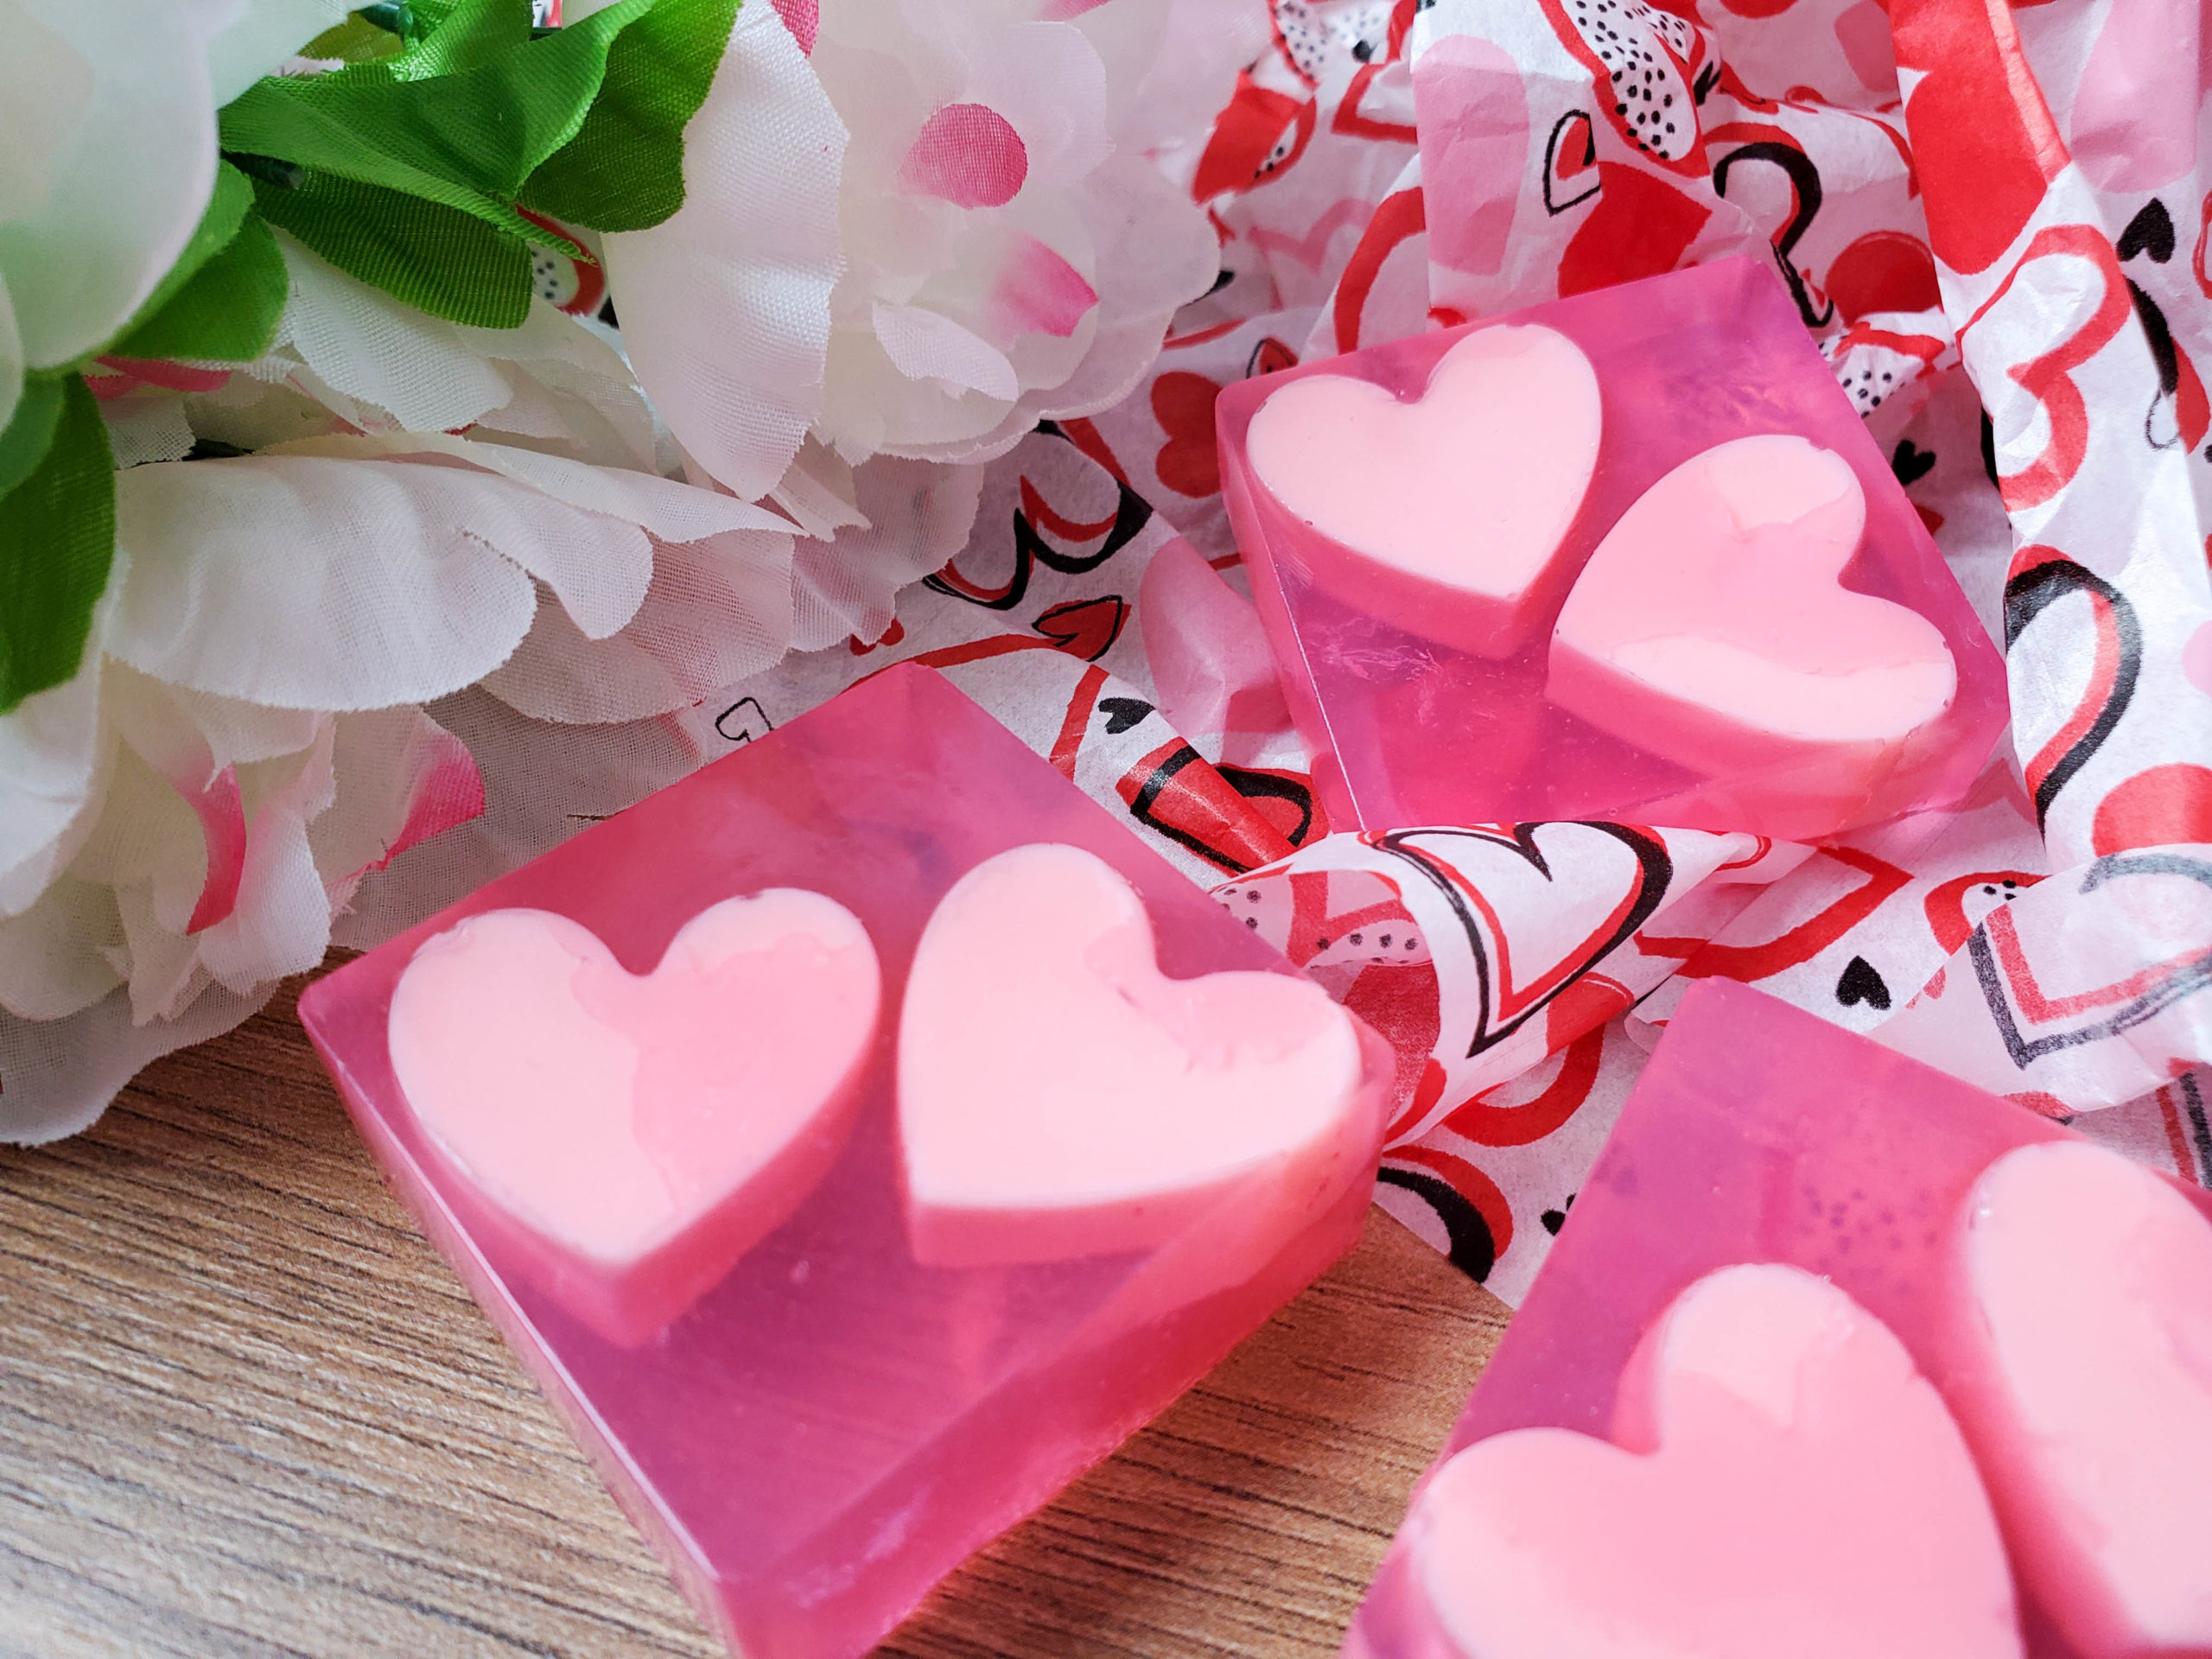 Coconut Valentine's Soaps with Hearts